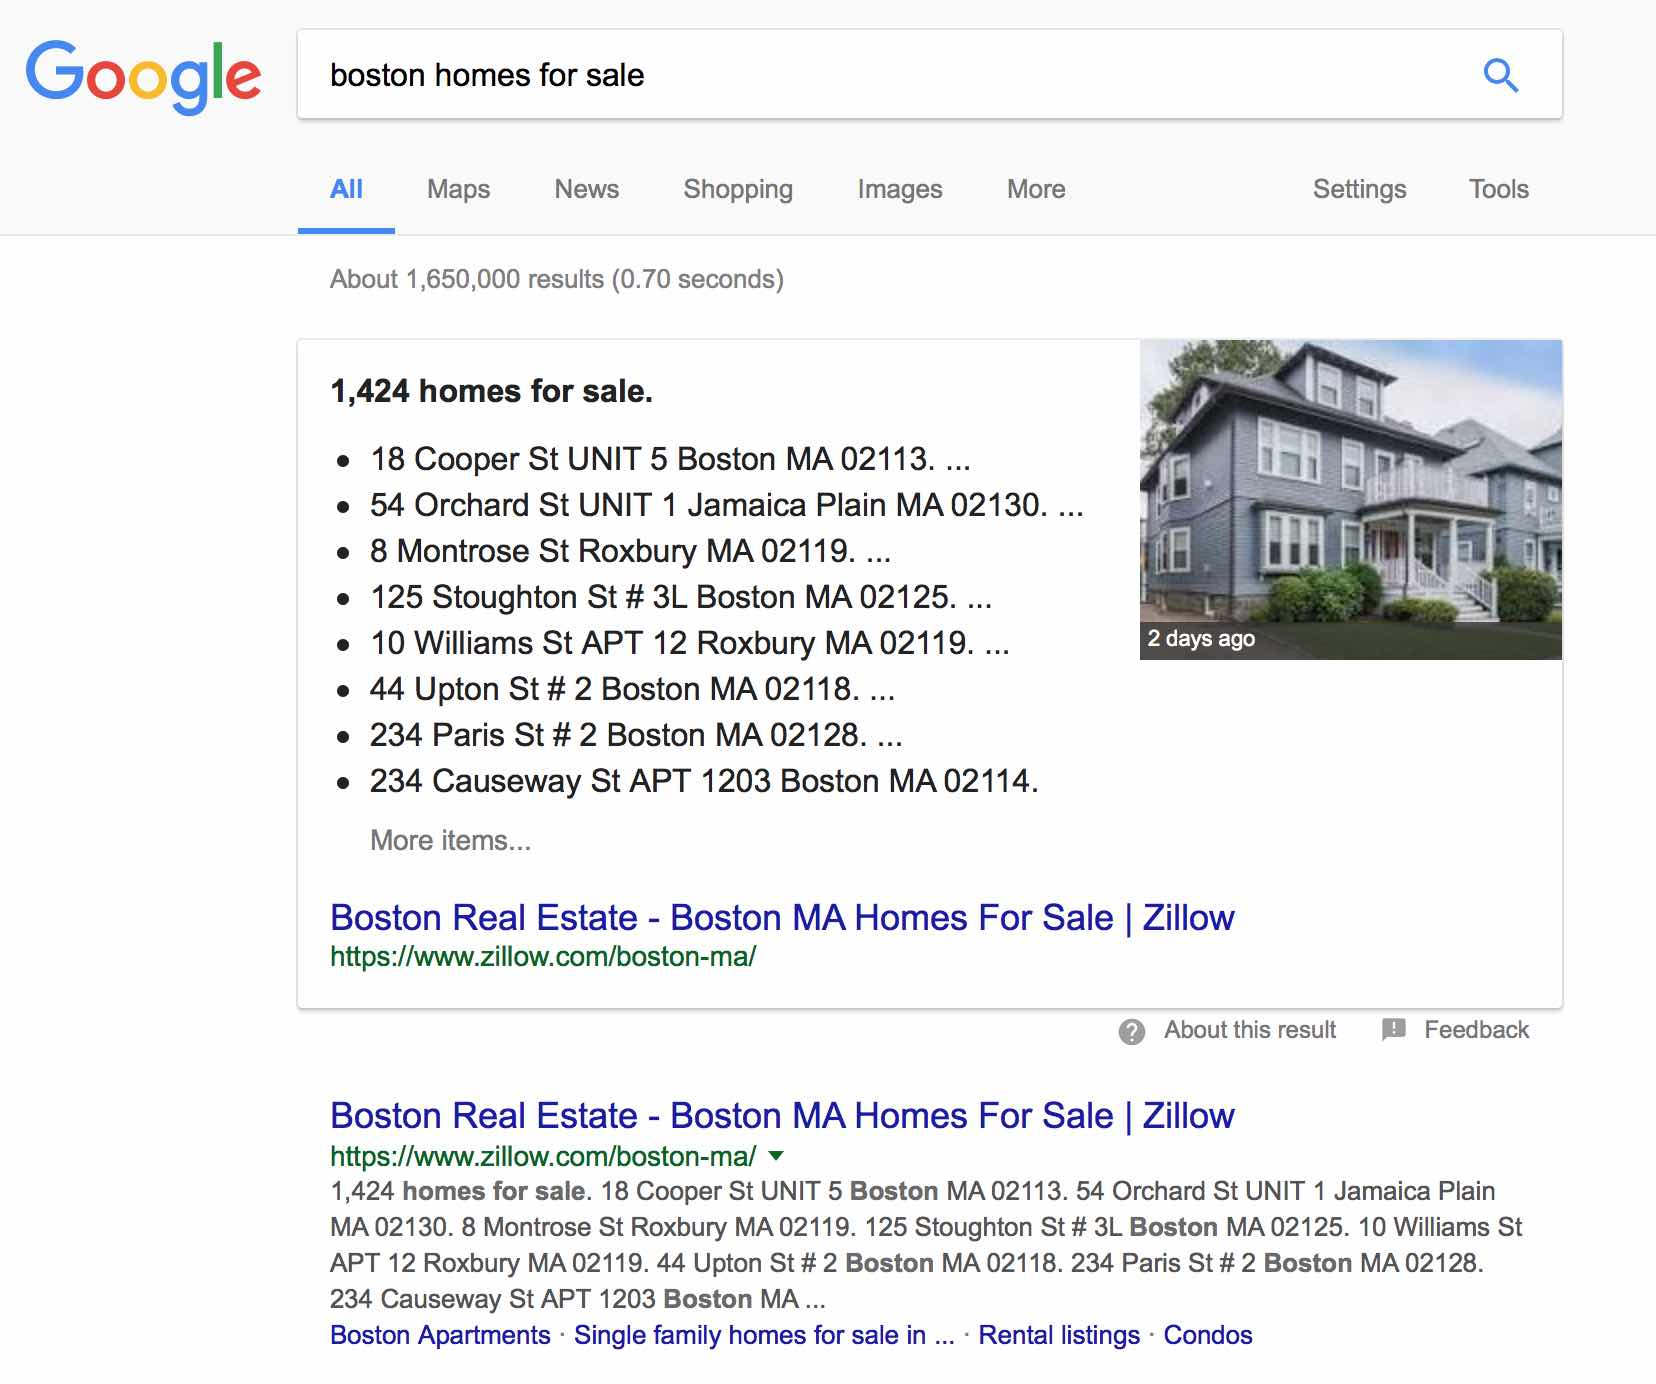 Google SERP shows rich snippet and knowledge panel after typing in boston homes for sale